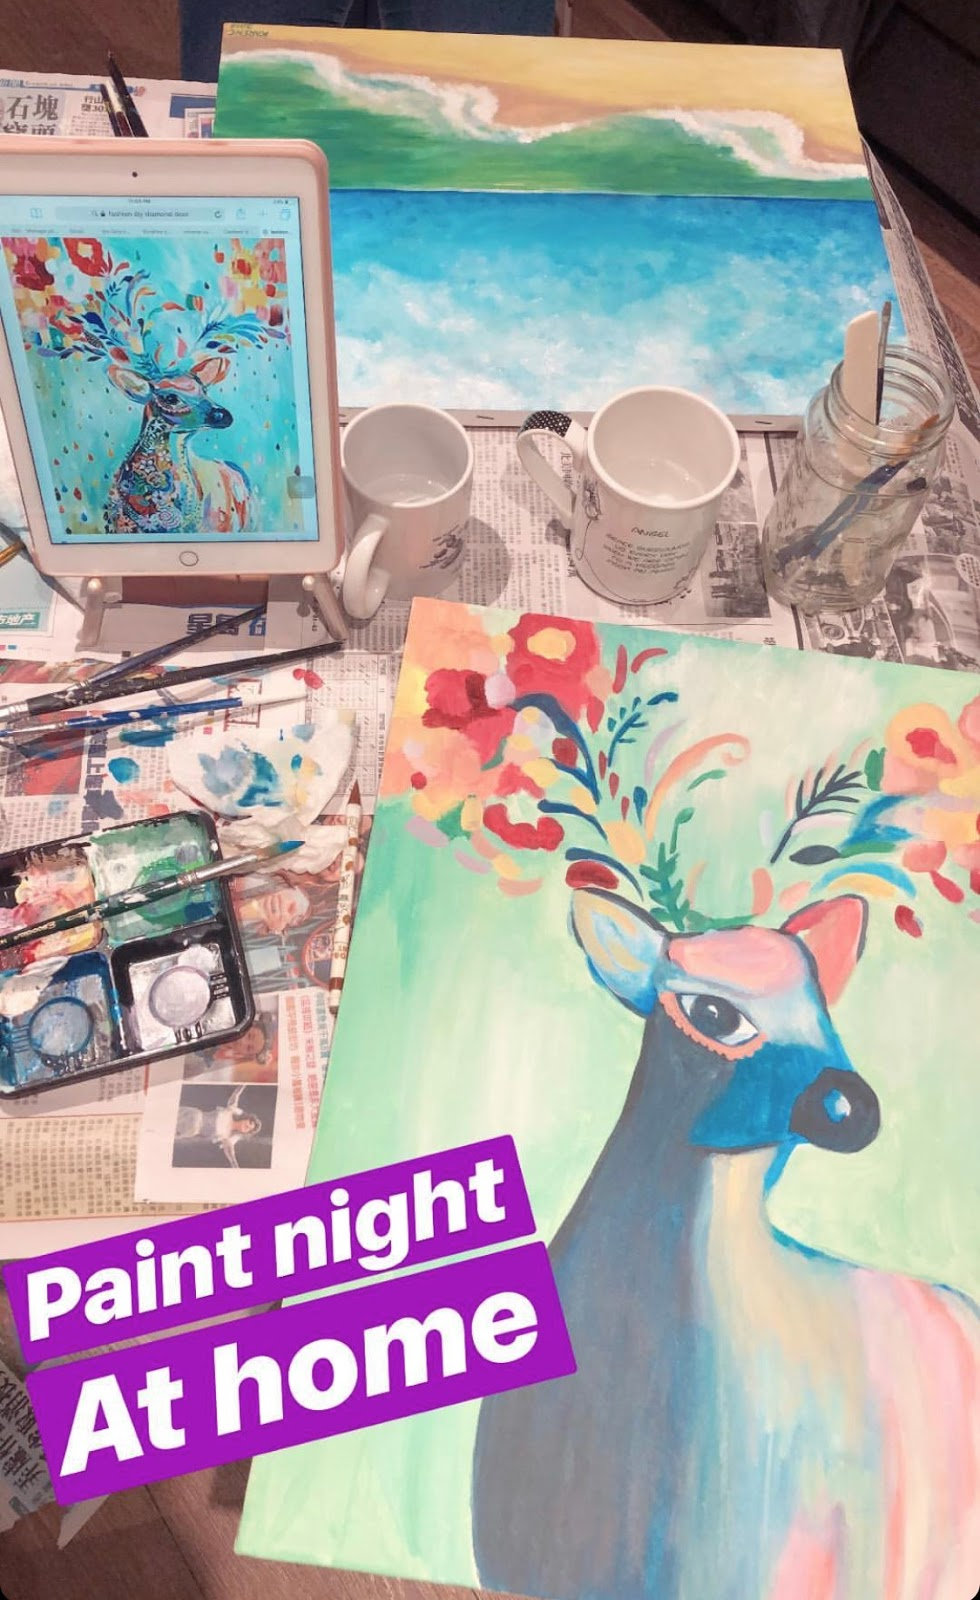 10 Fun Indoor Activities to do with Your BFFs in Winter - Make Your Own Paint Night at Home